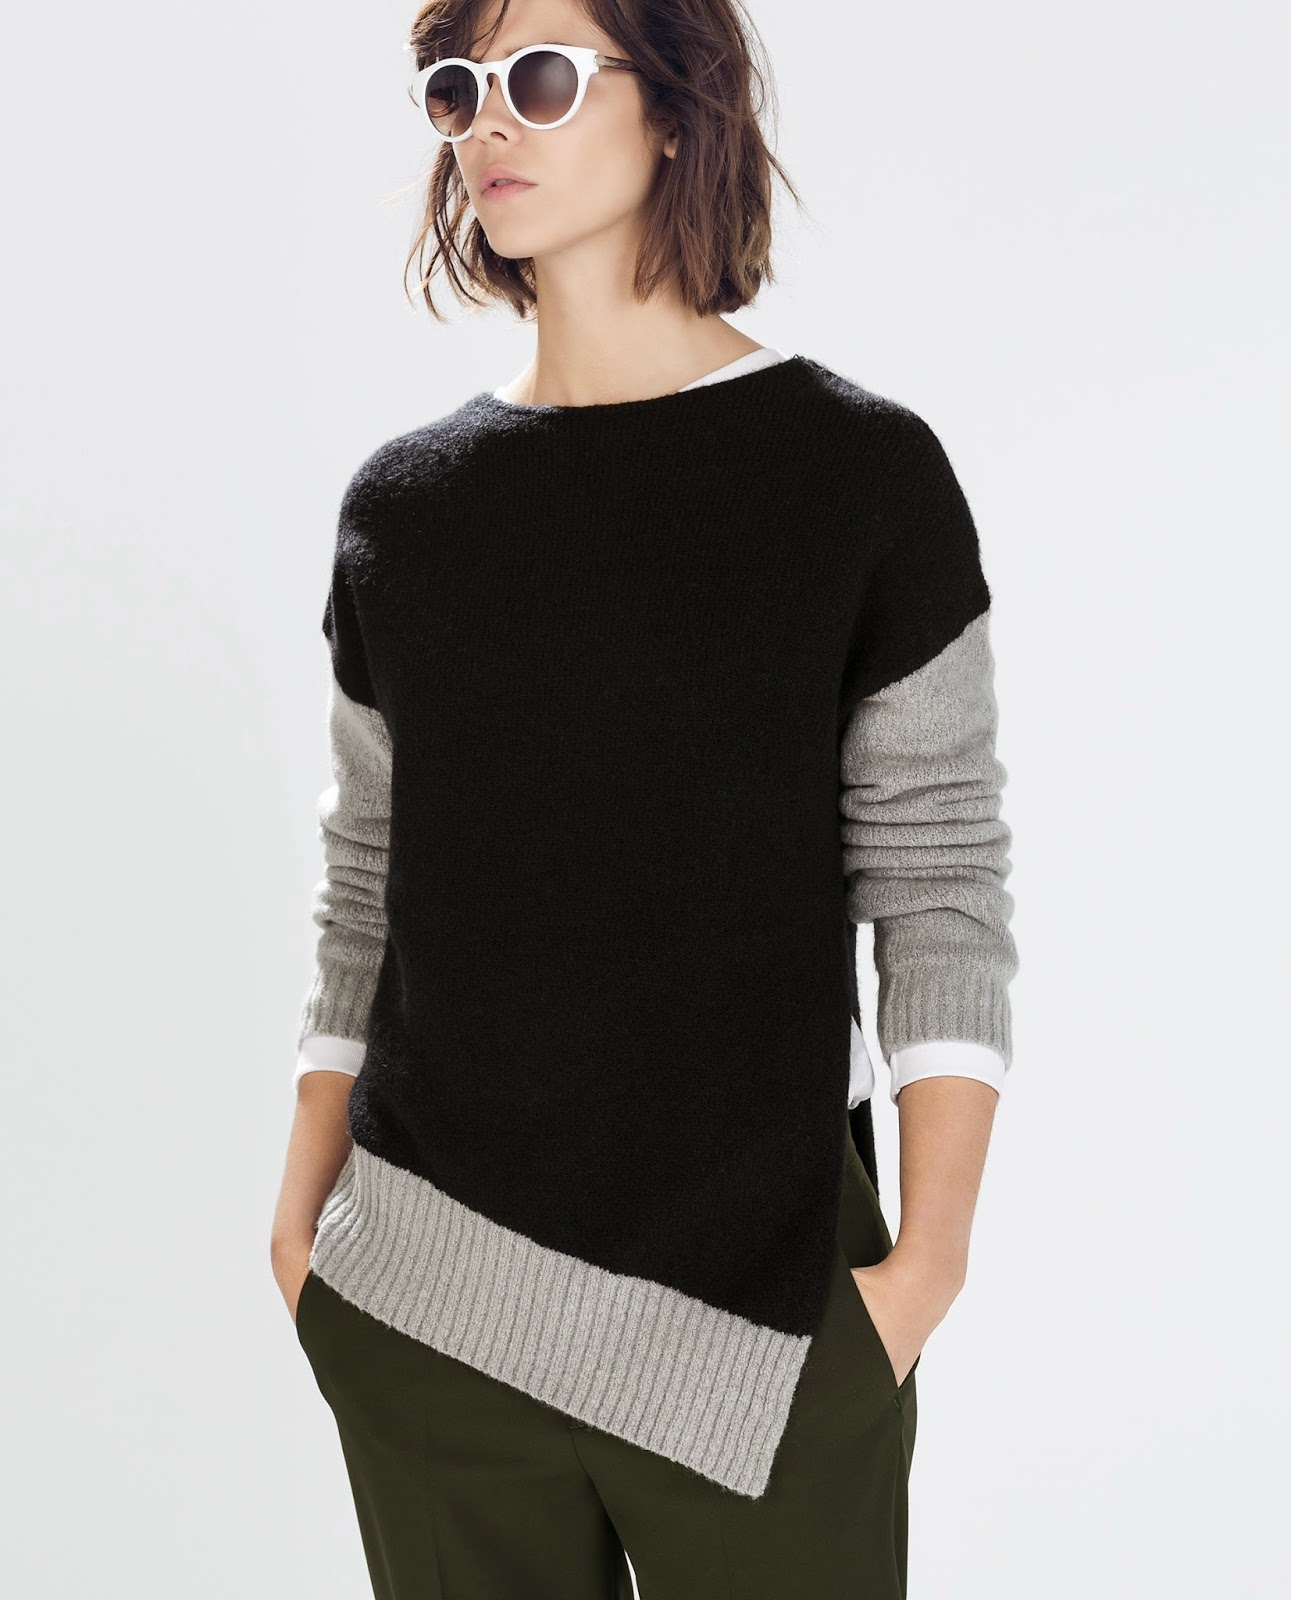 zara black and grey sweater